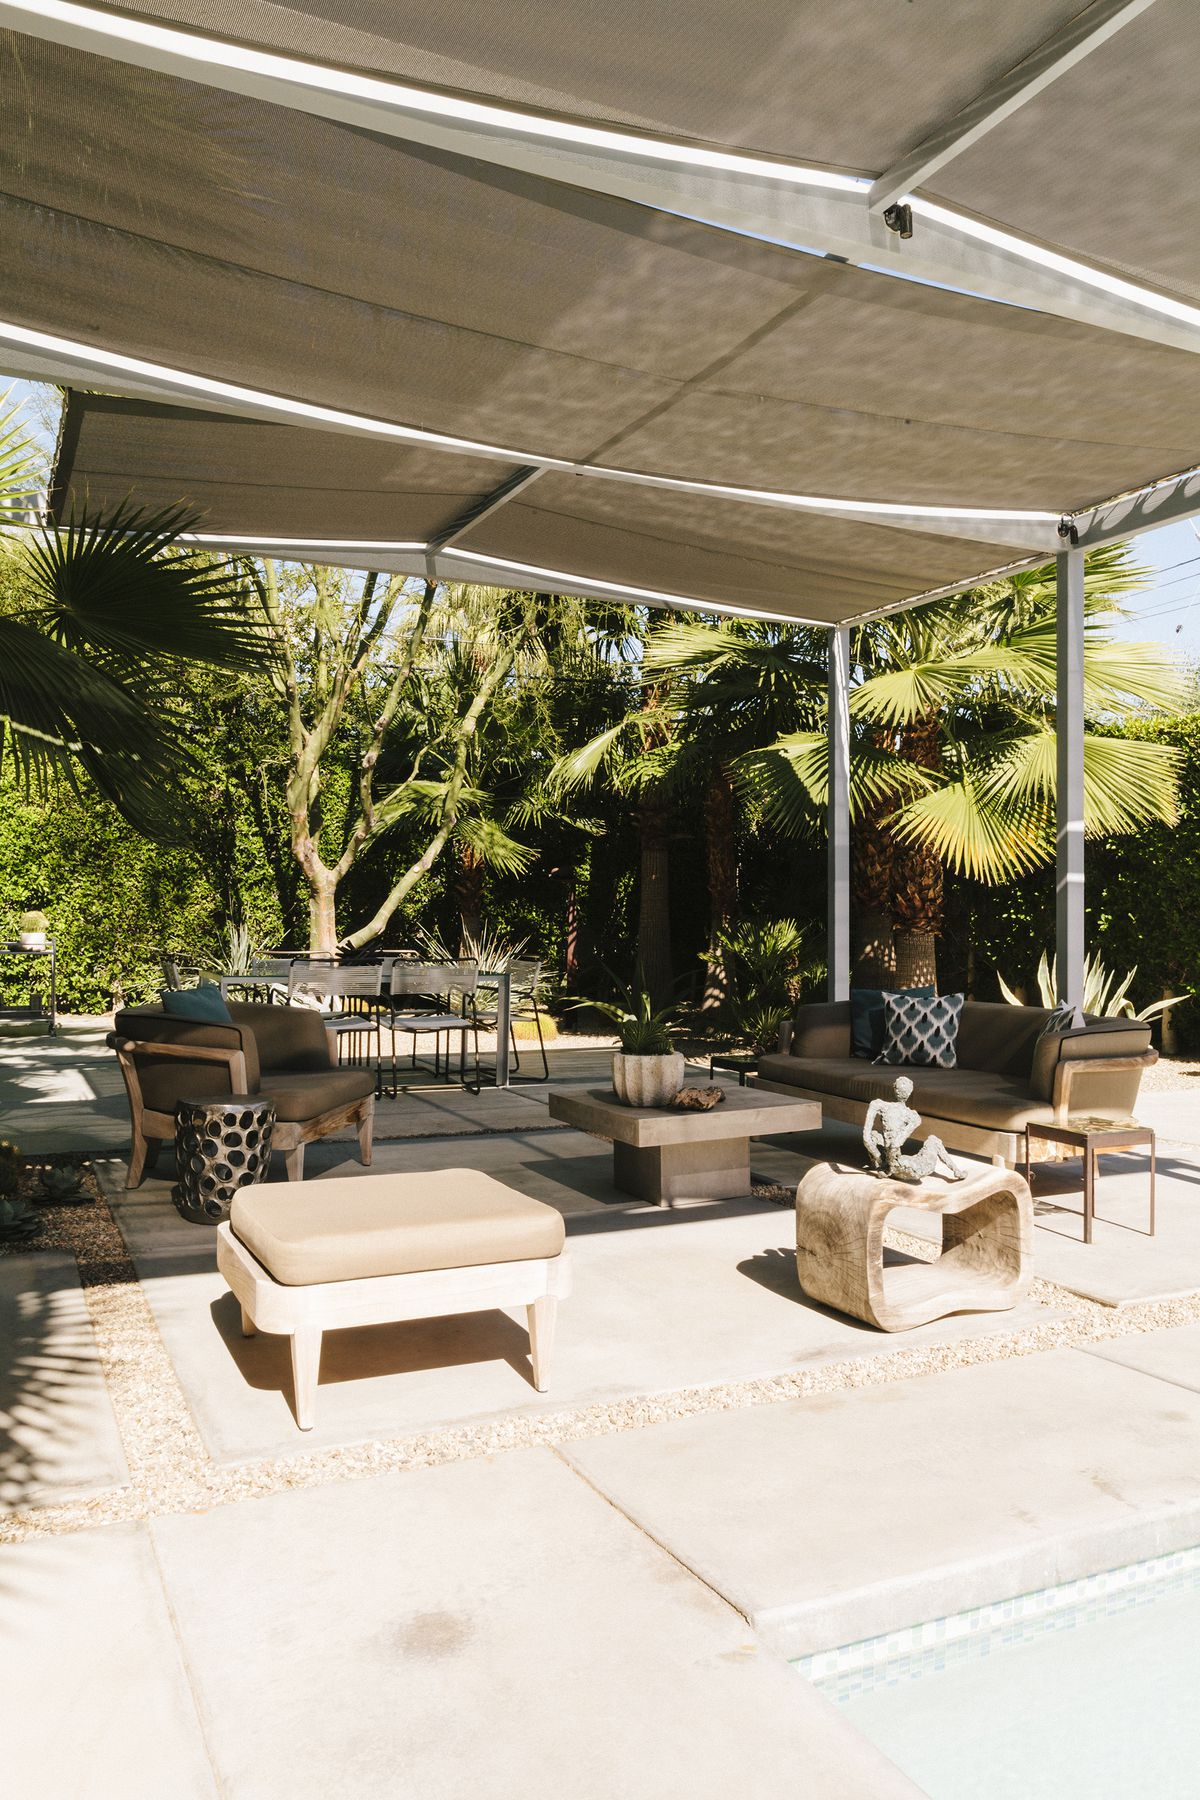 An outdoor patio. There are multiple chairs and a table. Above the patio is a sun shade. The patio is surrounded by palm trees.